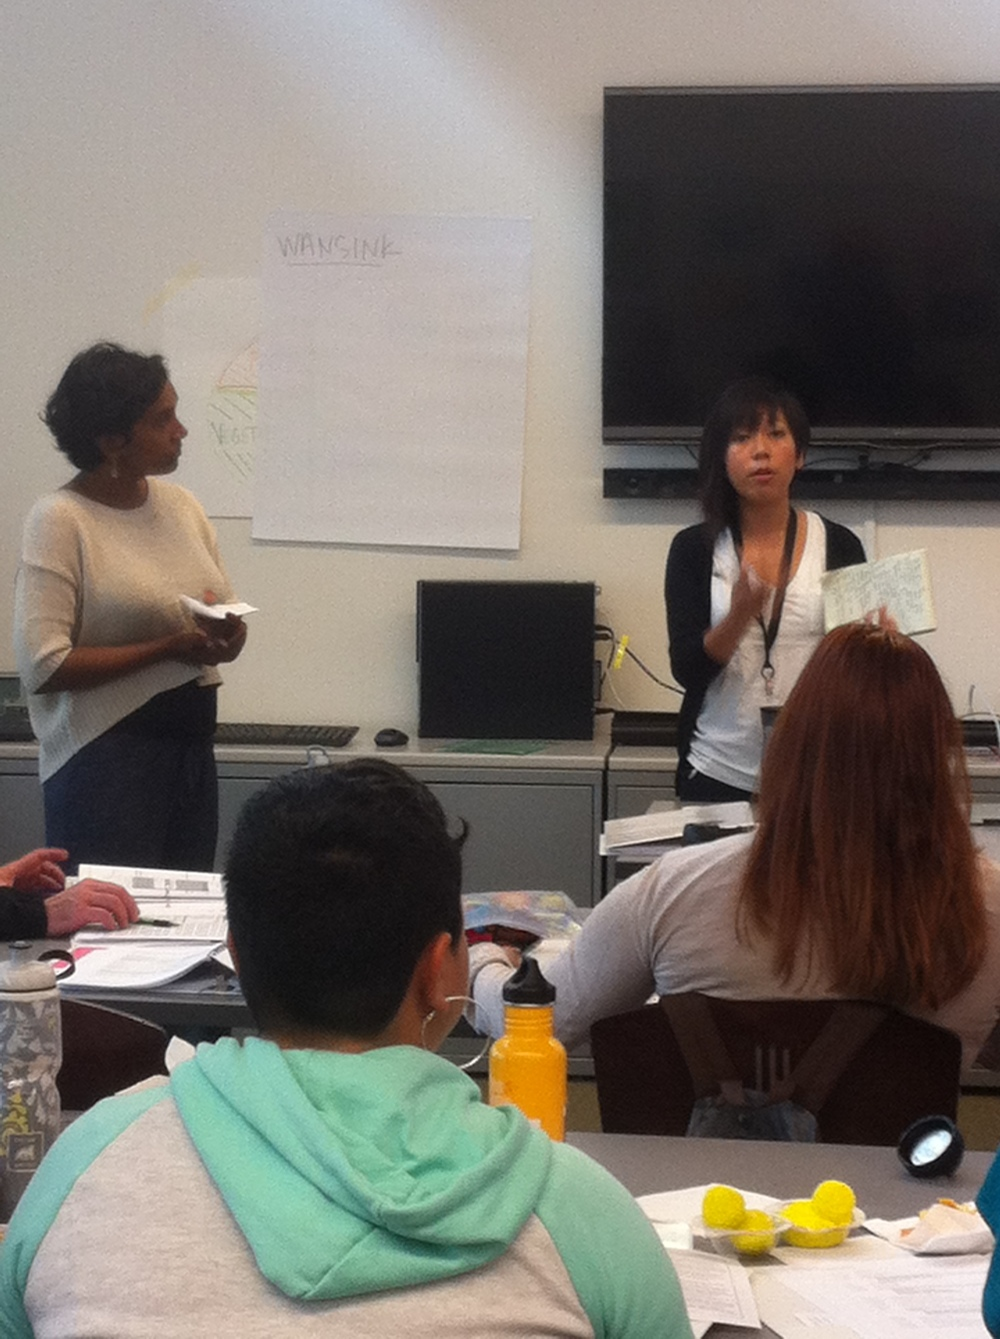 Leah's Pantry Programs Manager Monica Bhagwan and Registered Dietician My Tu Duong teaching students during our Spring 2015 Food Smarts Training Program Workshop